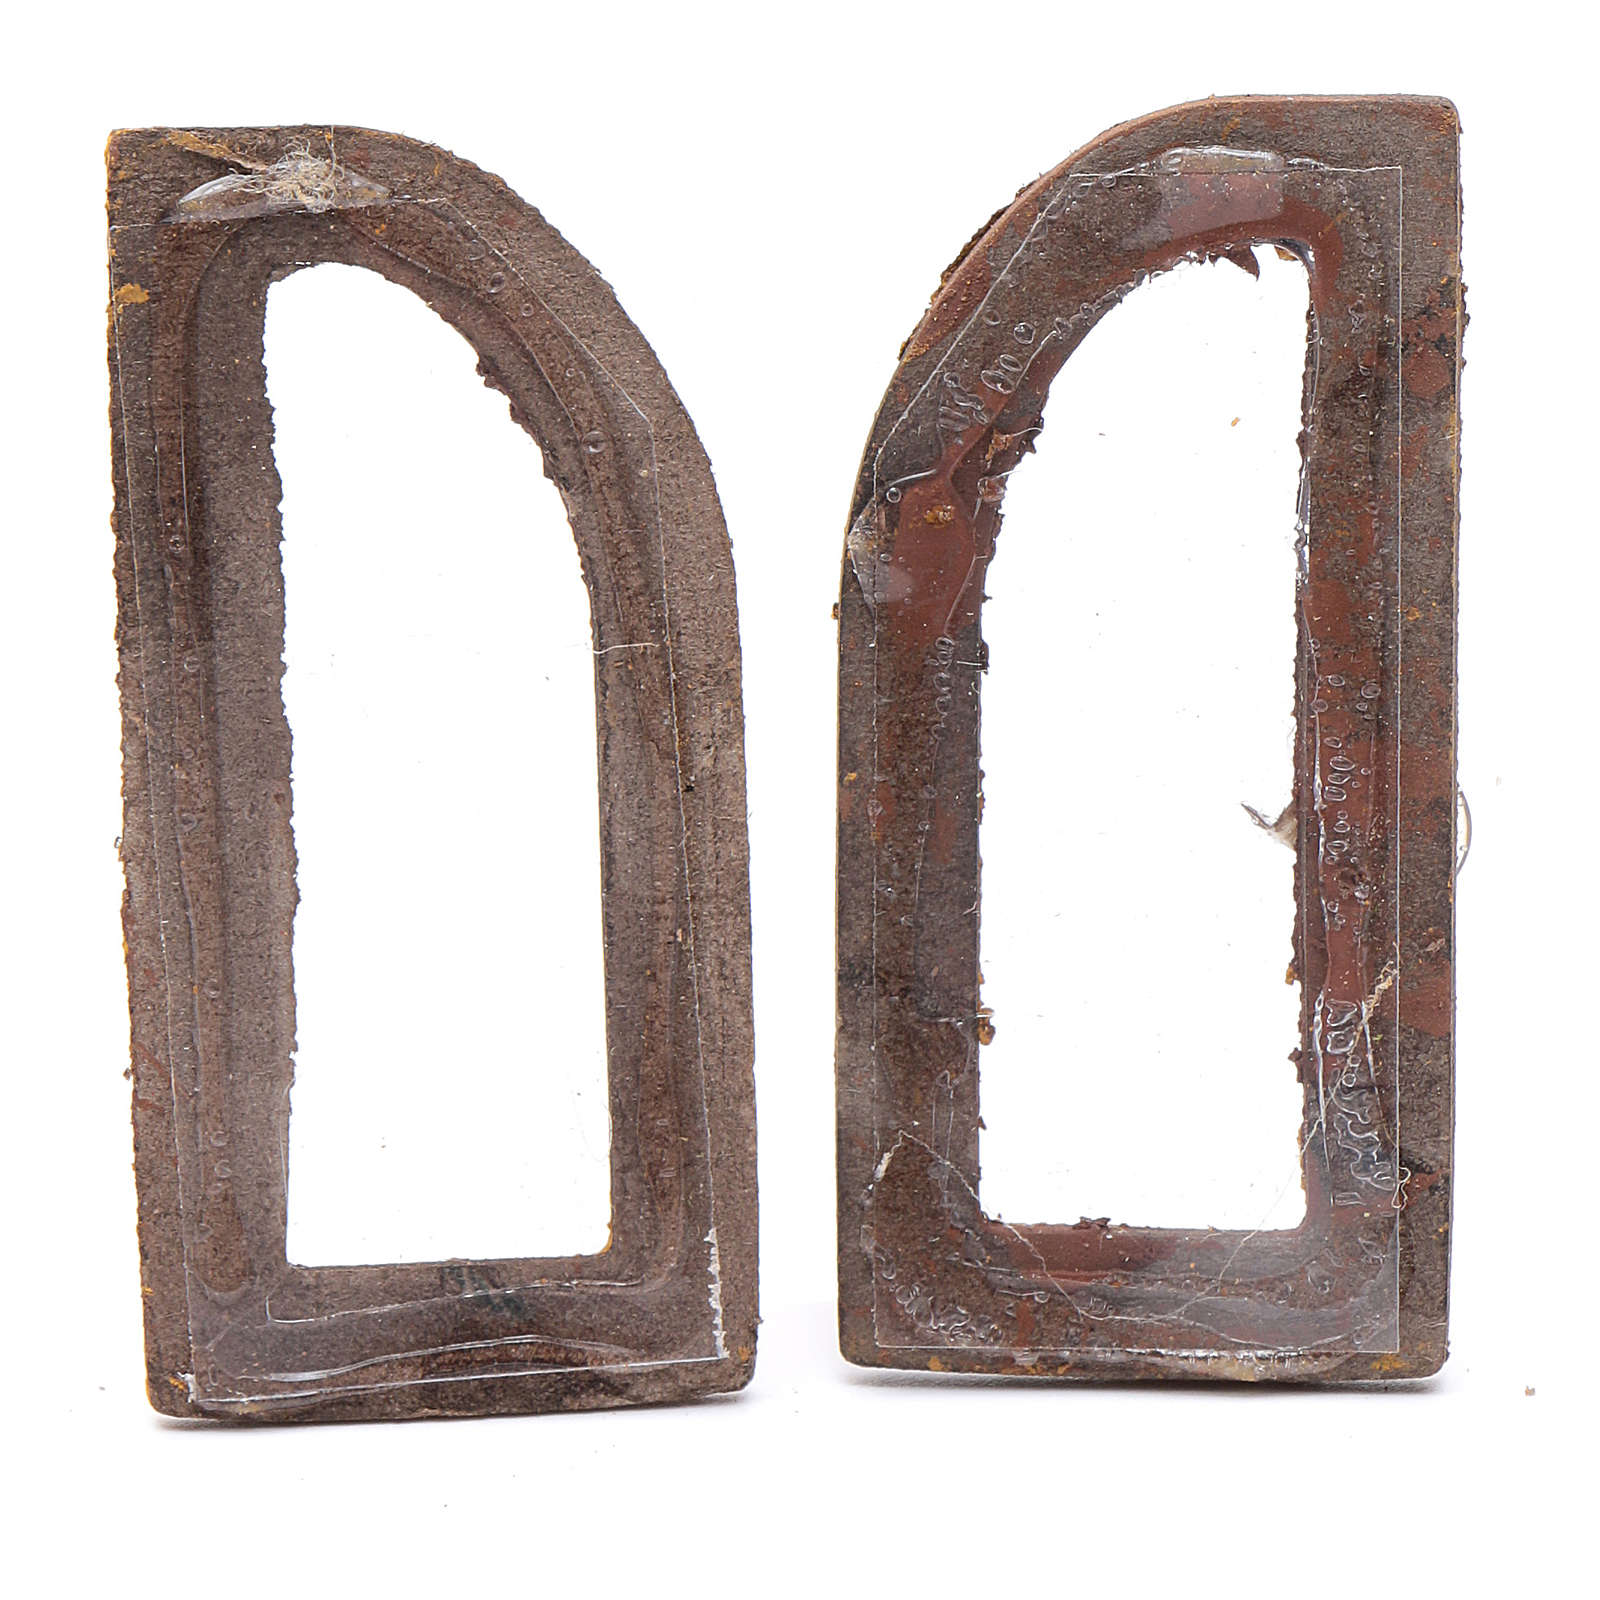 Nativity scene arched window 2 pieces set 5 cm 4